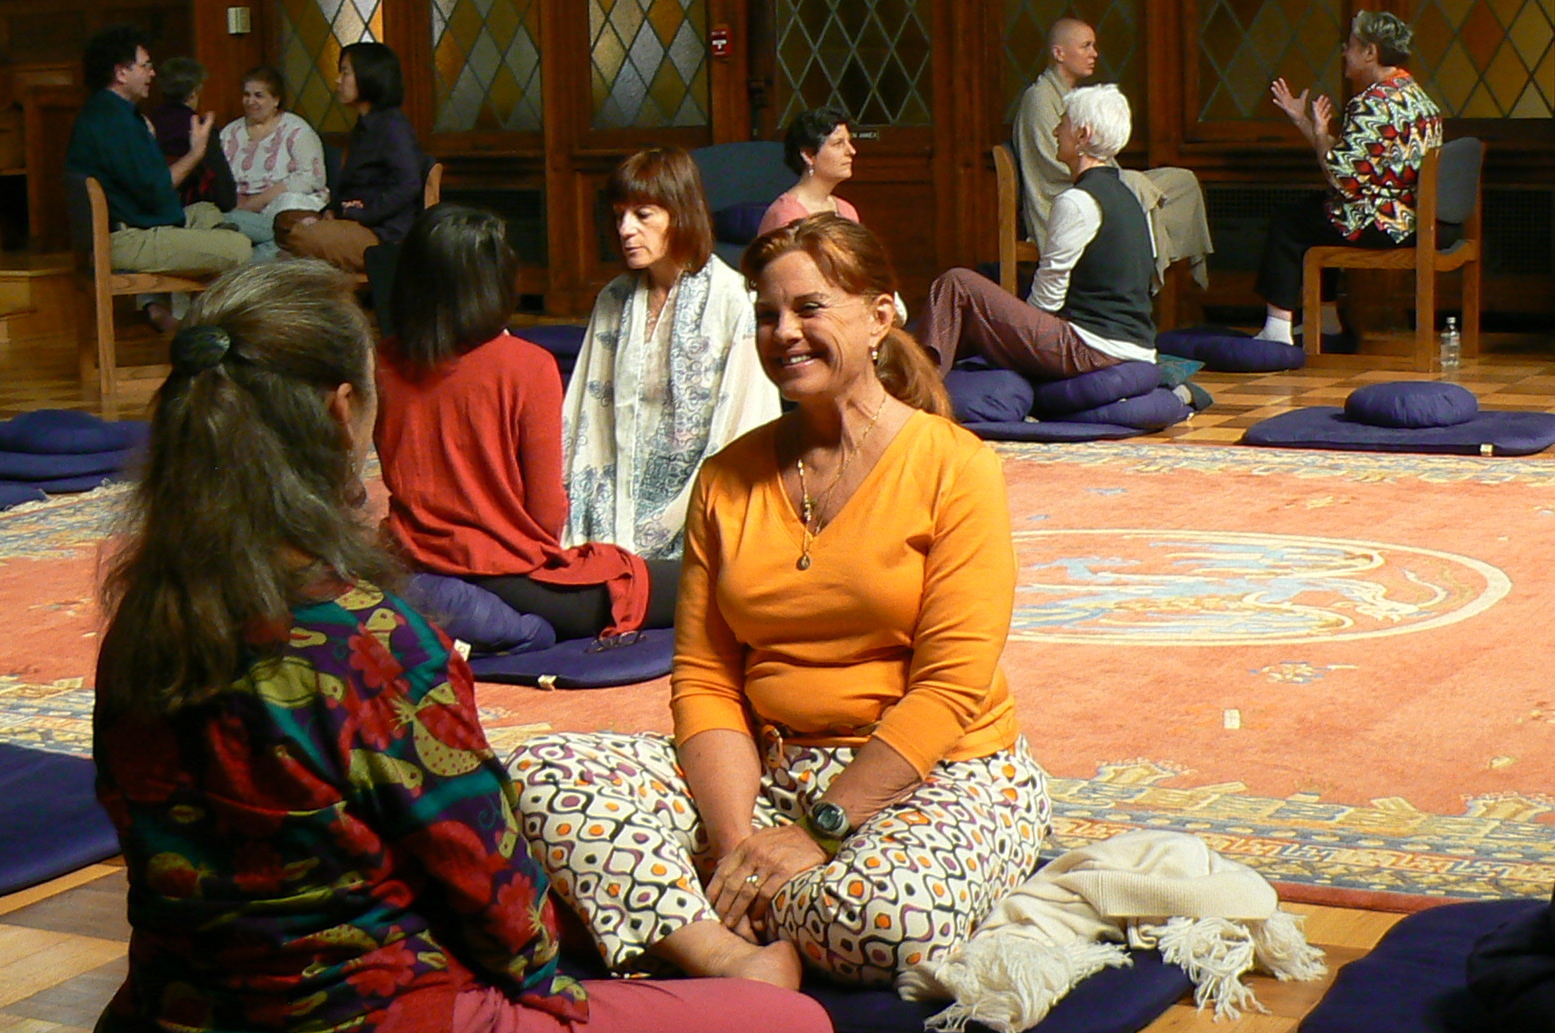 From Relational Meditation to a Community of Wisdom